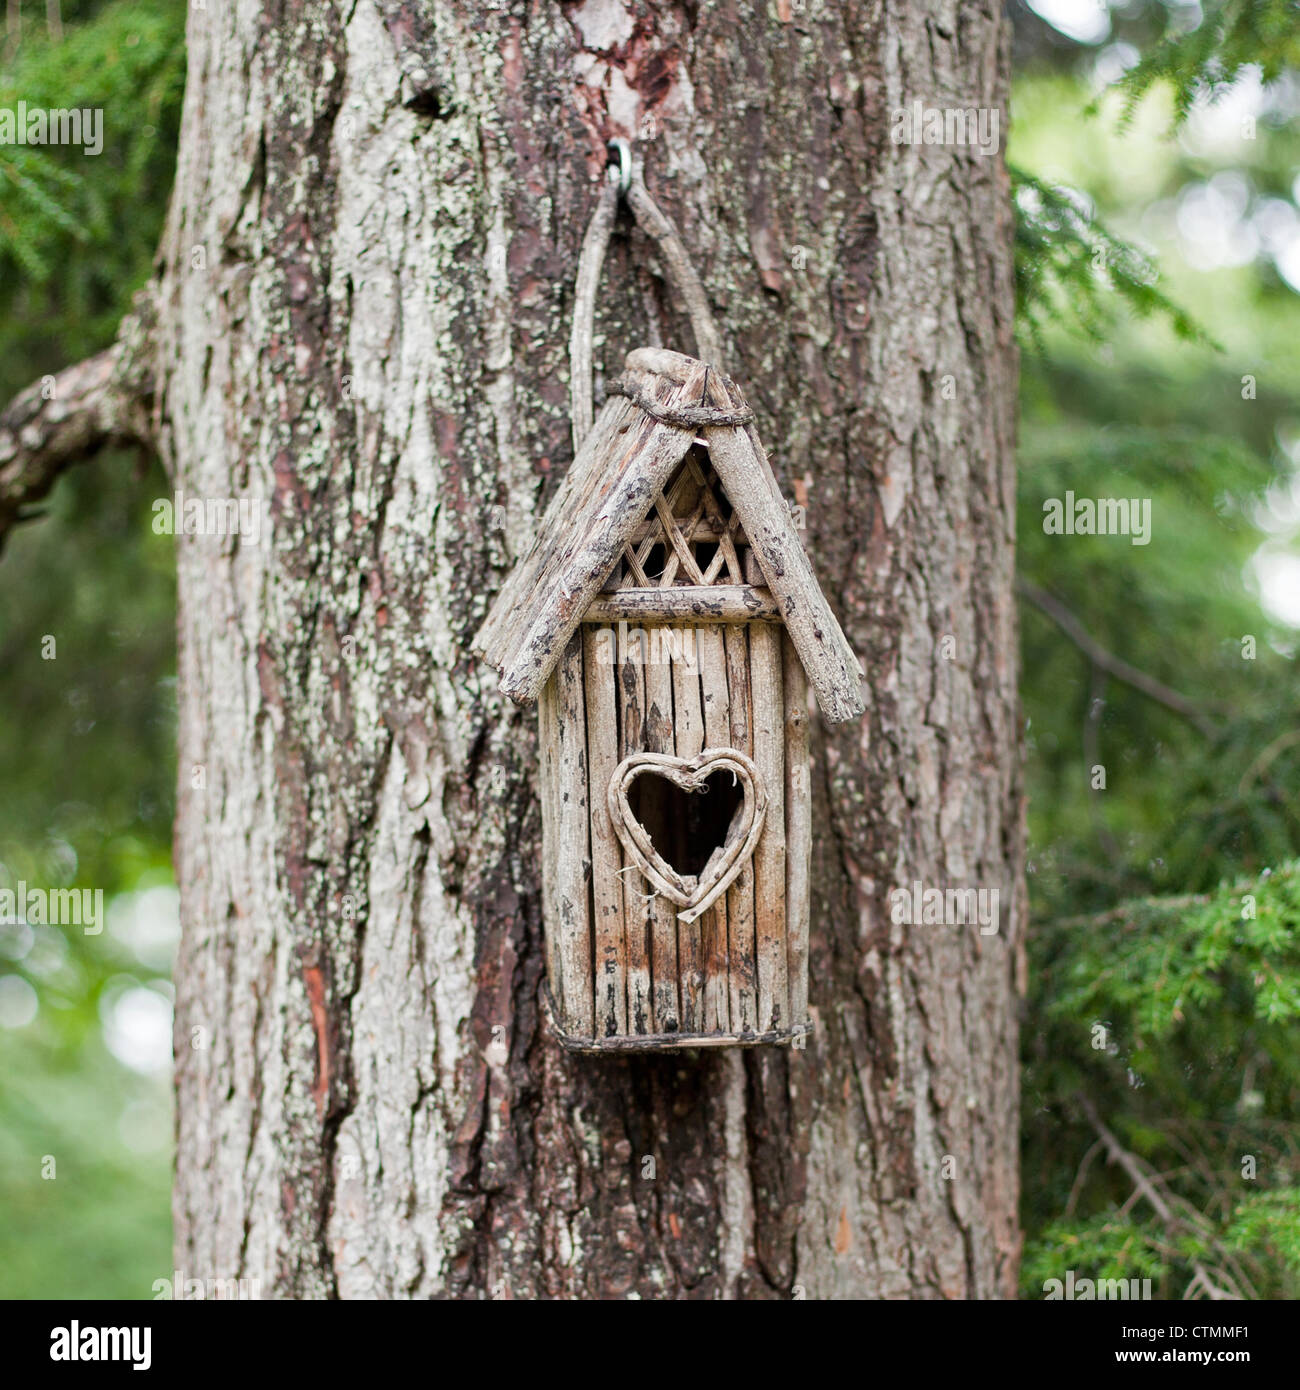 A handmade wooden birdhouse with a heart shaped opening hangs on a tree. - Stock Image